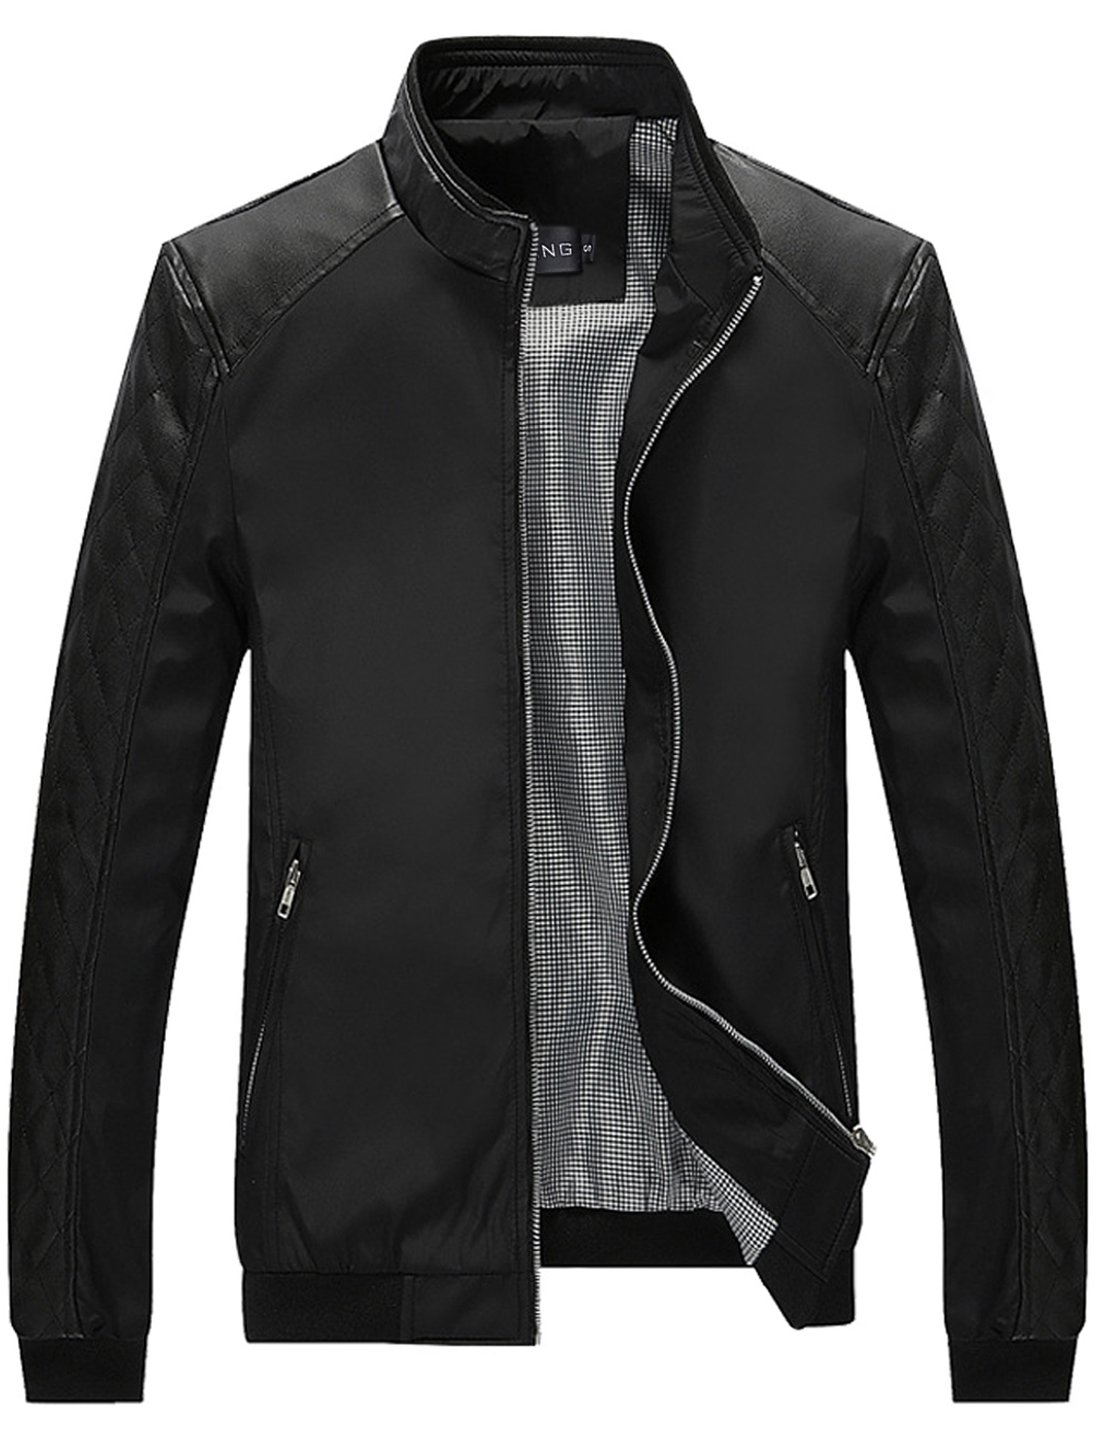 Tanming Men's Color Block Slim Casual Thin Lightweight Jacket (Small, Black) by Tanming